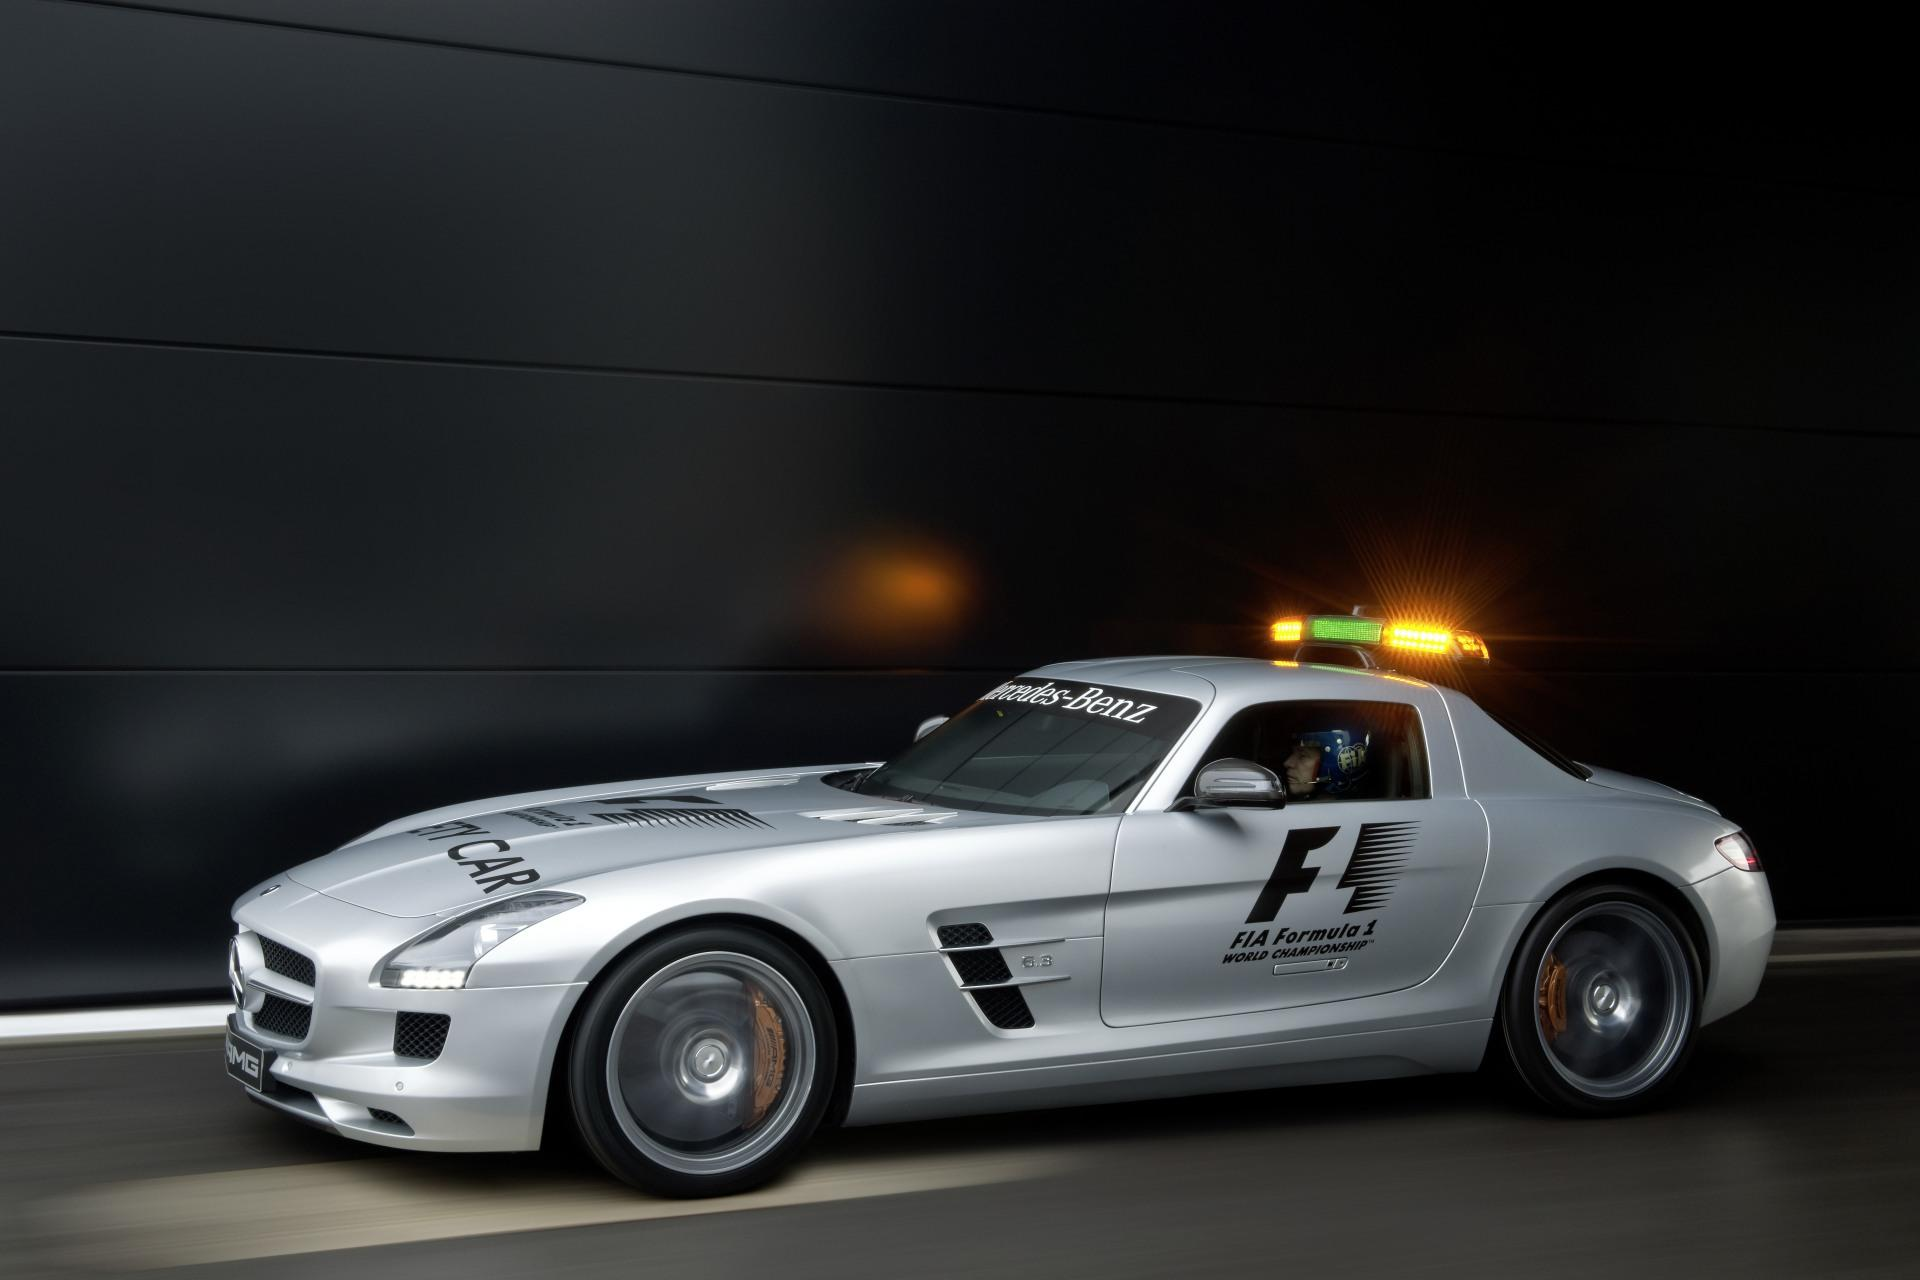 Sls Black Series >> 2010 Mercedes-Benz SLS AMG F1 Safety Car News and Information